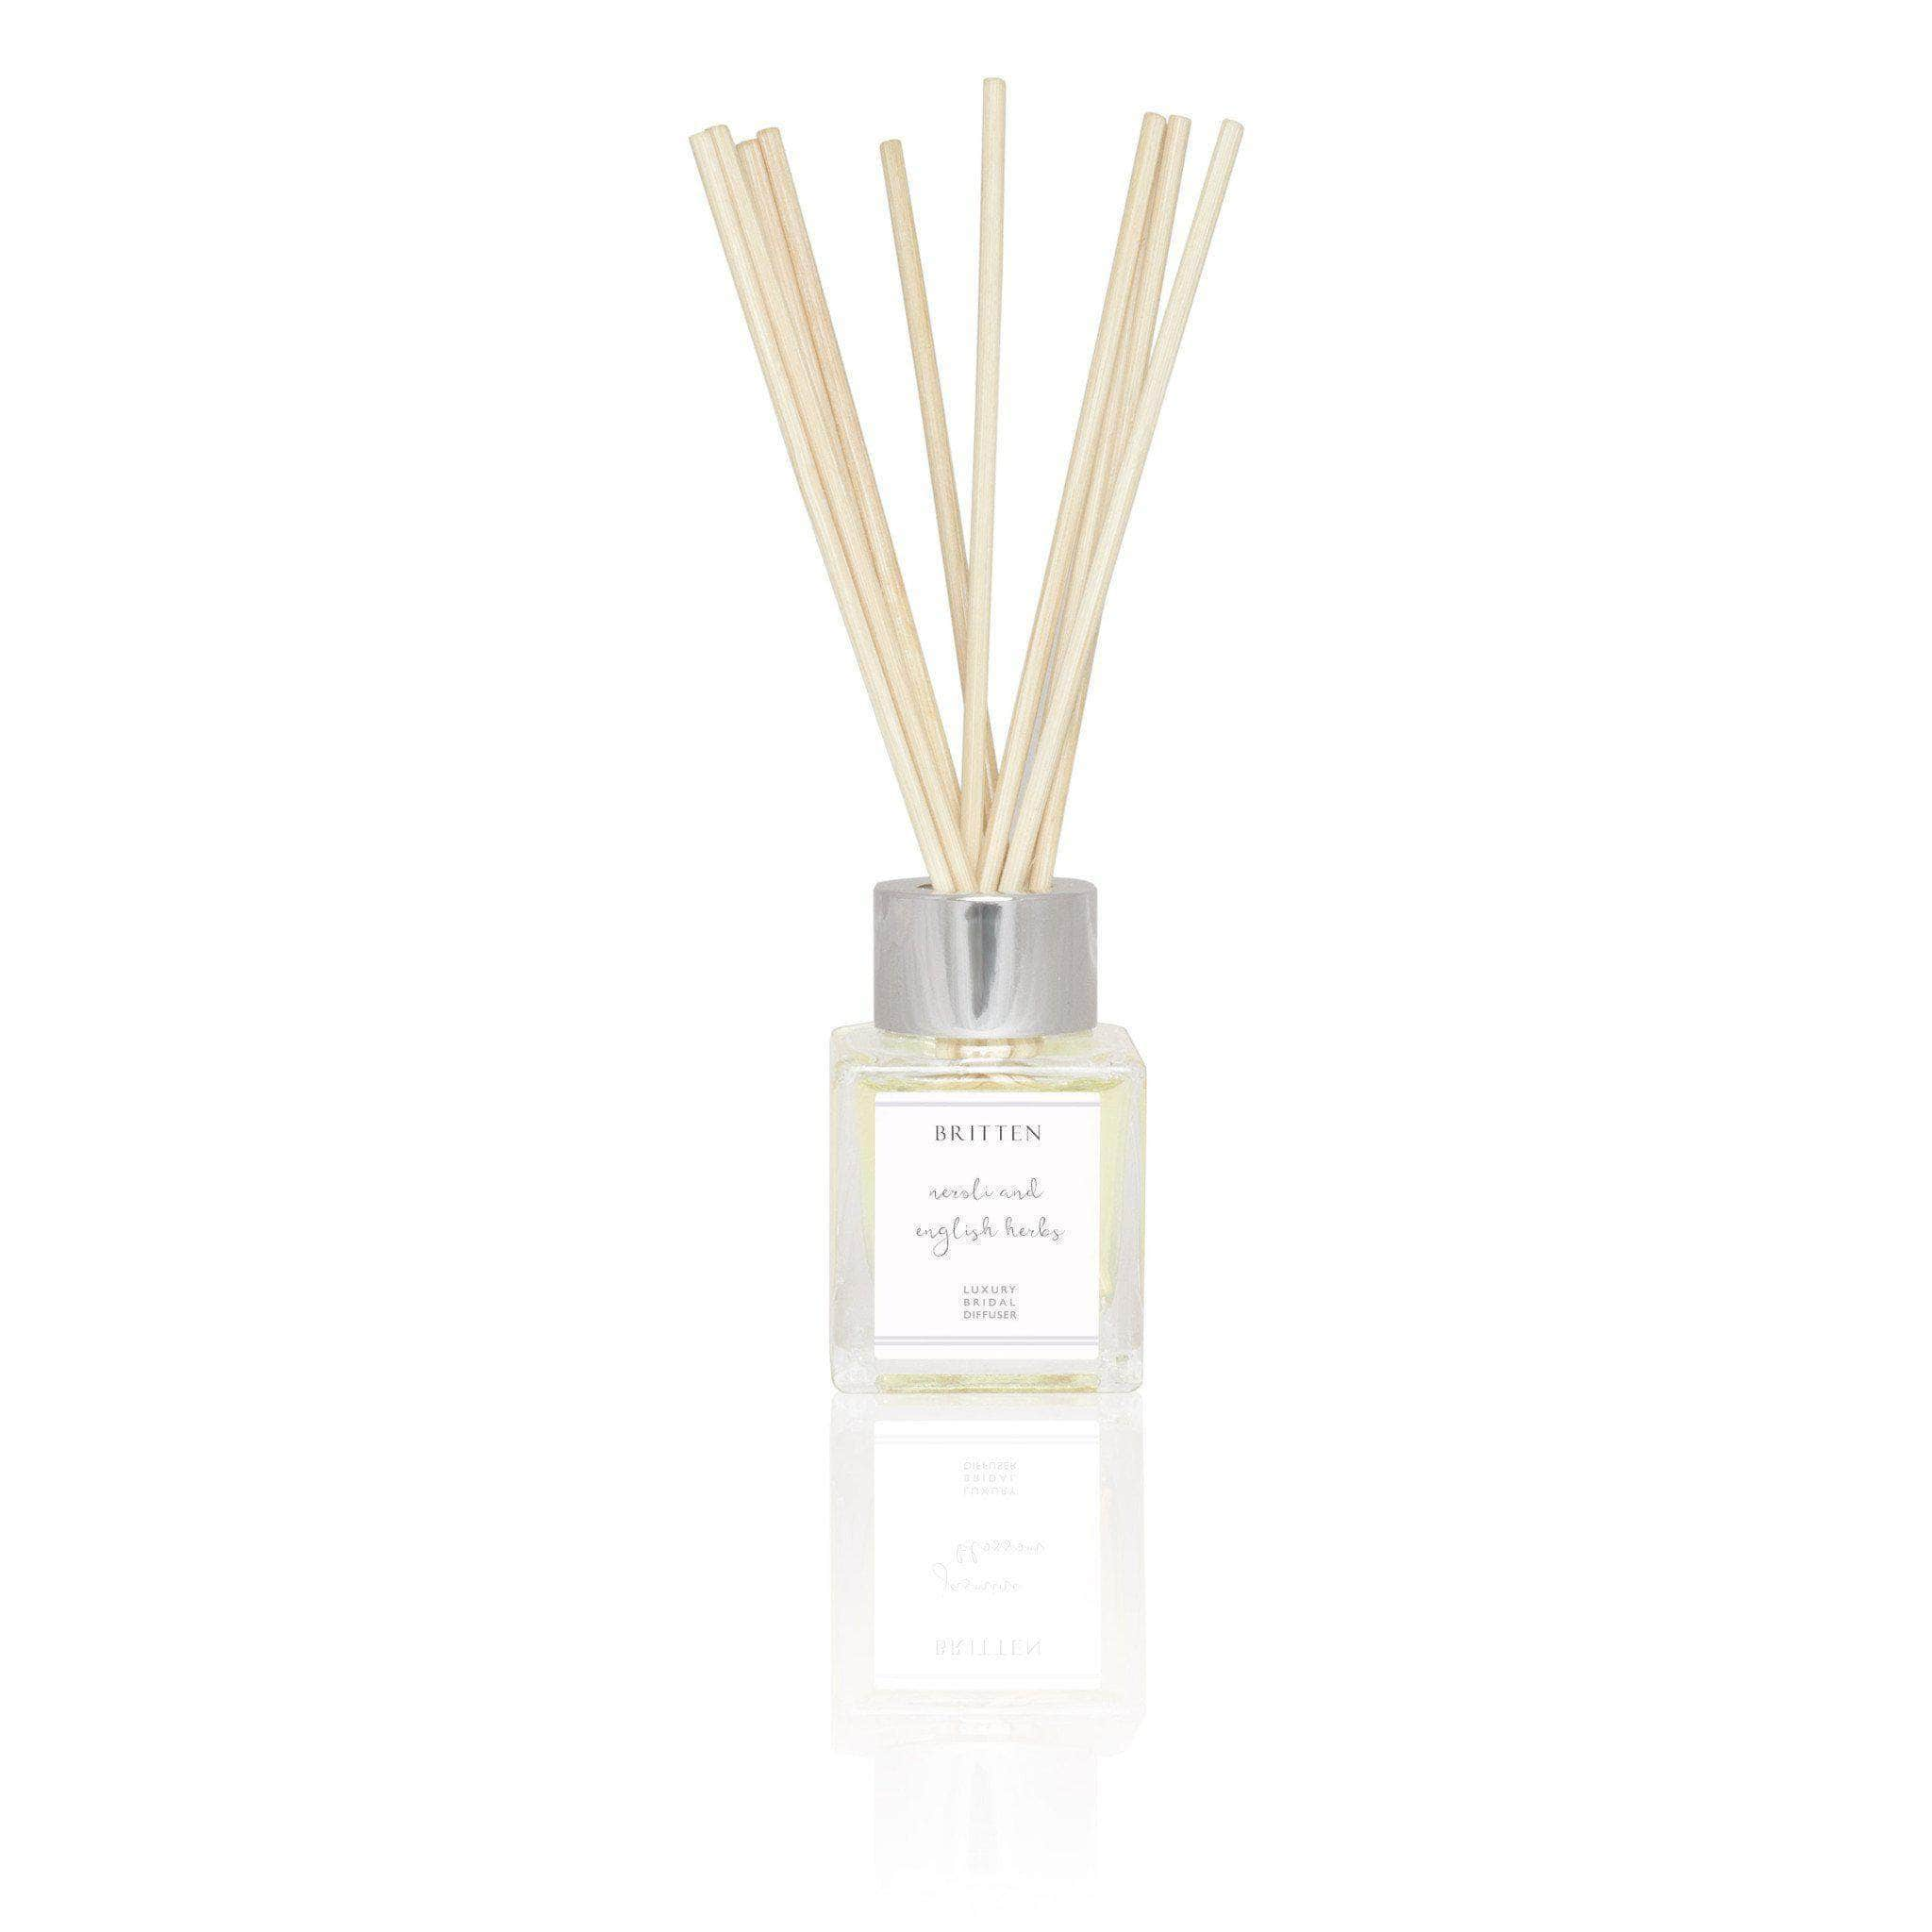 Neroli & English Herbs Essential Oils Luxury Bridal Diffuser